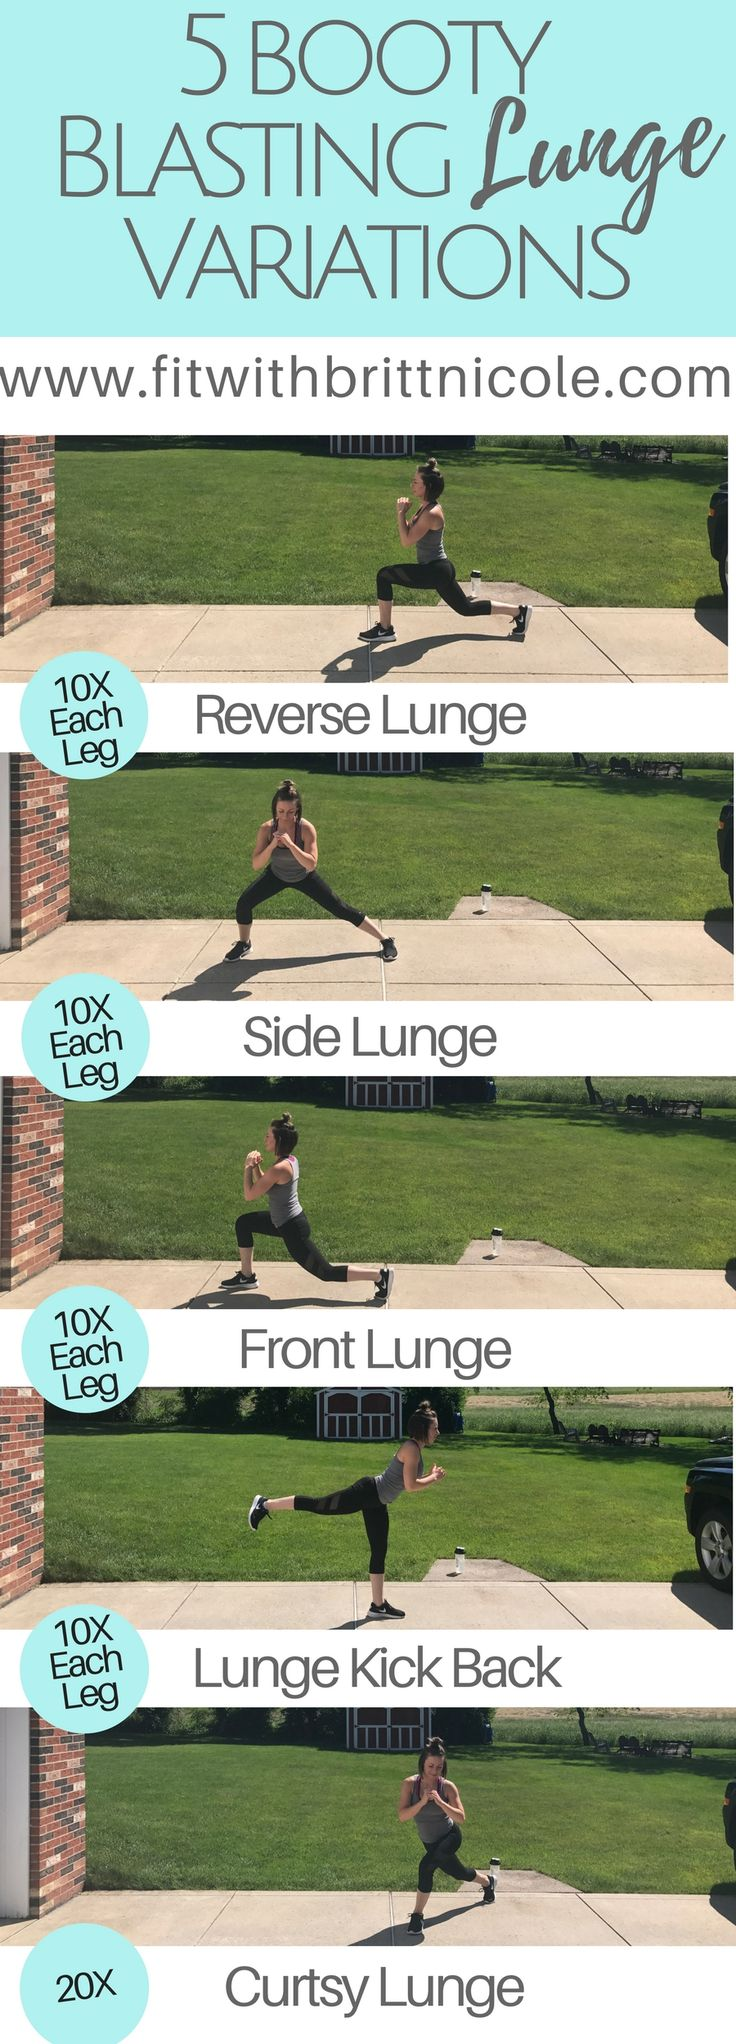 Lunges are THE BEST way to build your booty! 5 Booty Blasting Lunge Variations to build and tone your booty! Lunges are an awesome butt exercise that I add to every one of my leg workouts!